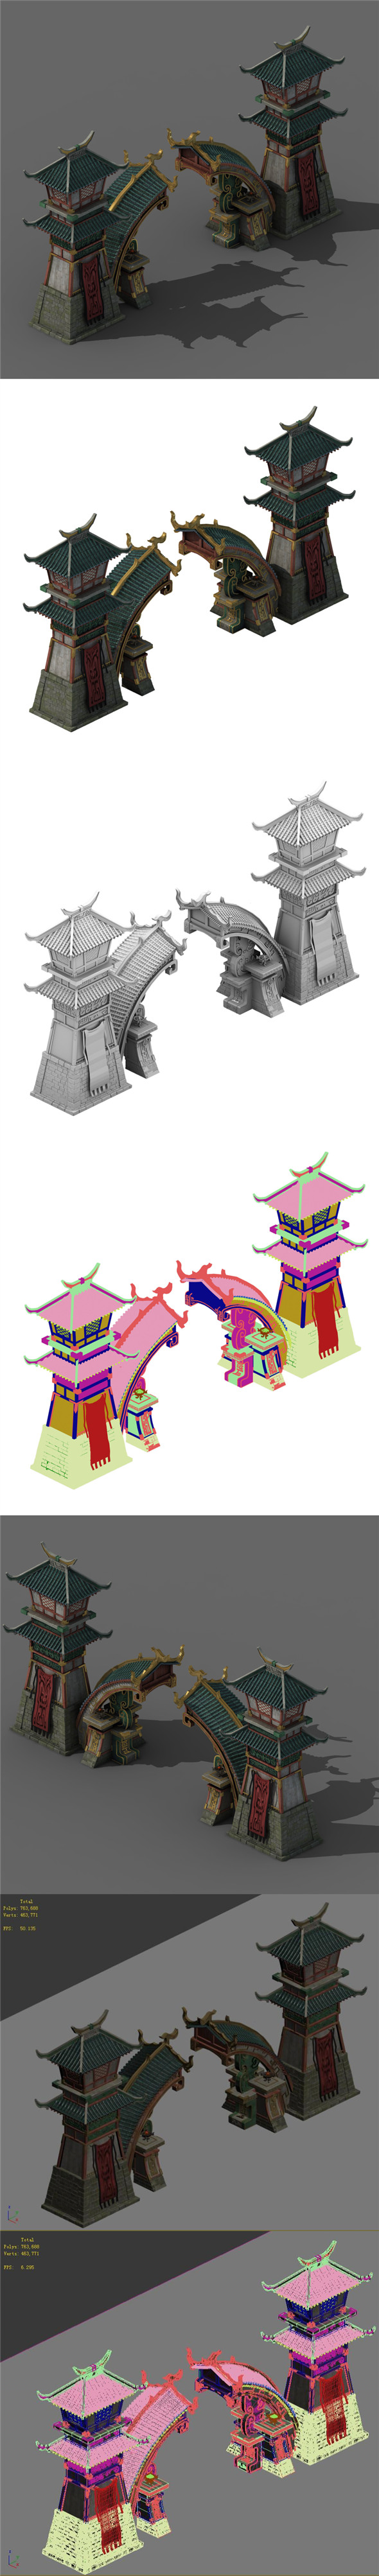 Architecture - City Gate 02 - 3DOcean Item for Sale